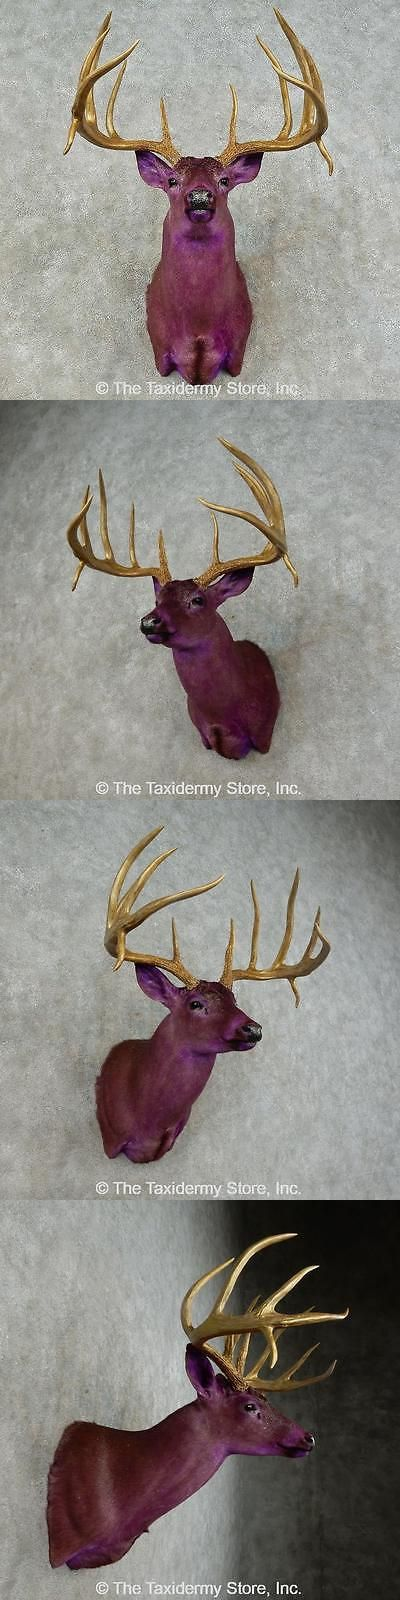 Large Animals 177908: #16241 E+ | Purple Whitetail Deer Taxidermy Shoulder Mount For Sale -> BUY IT NOW ONLY: $1315 on eBay!